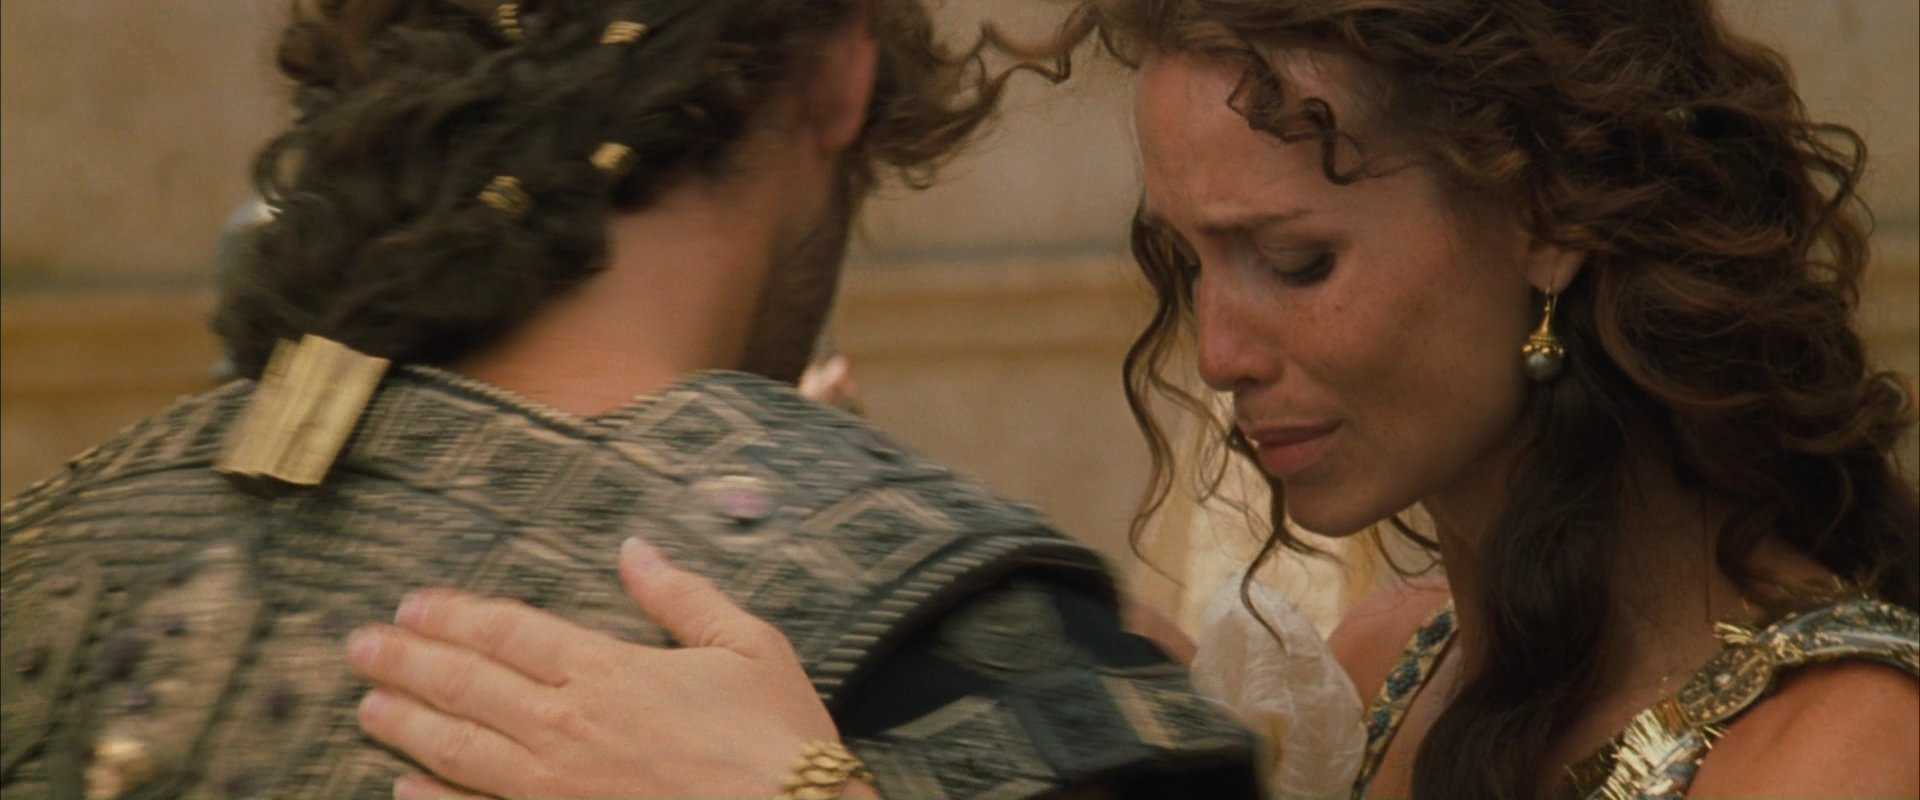 hector and andromache relationship test